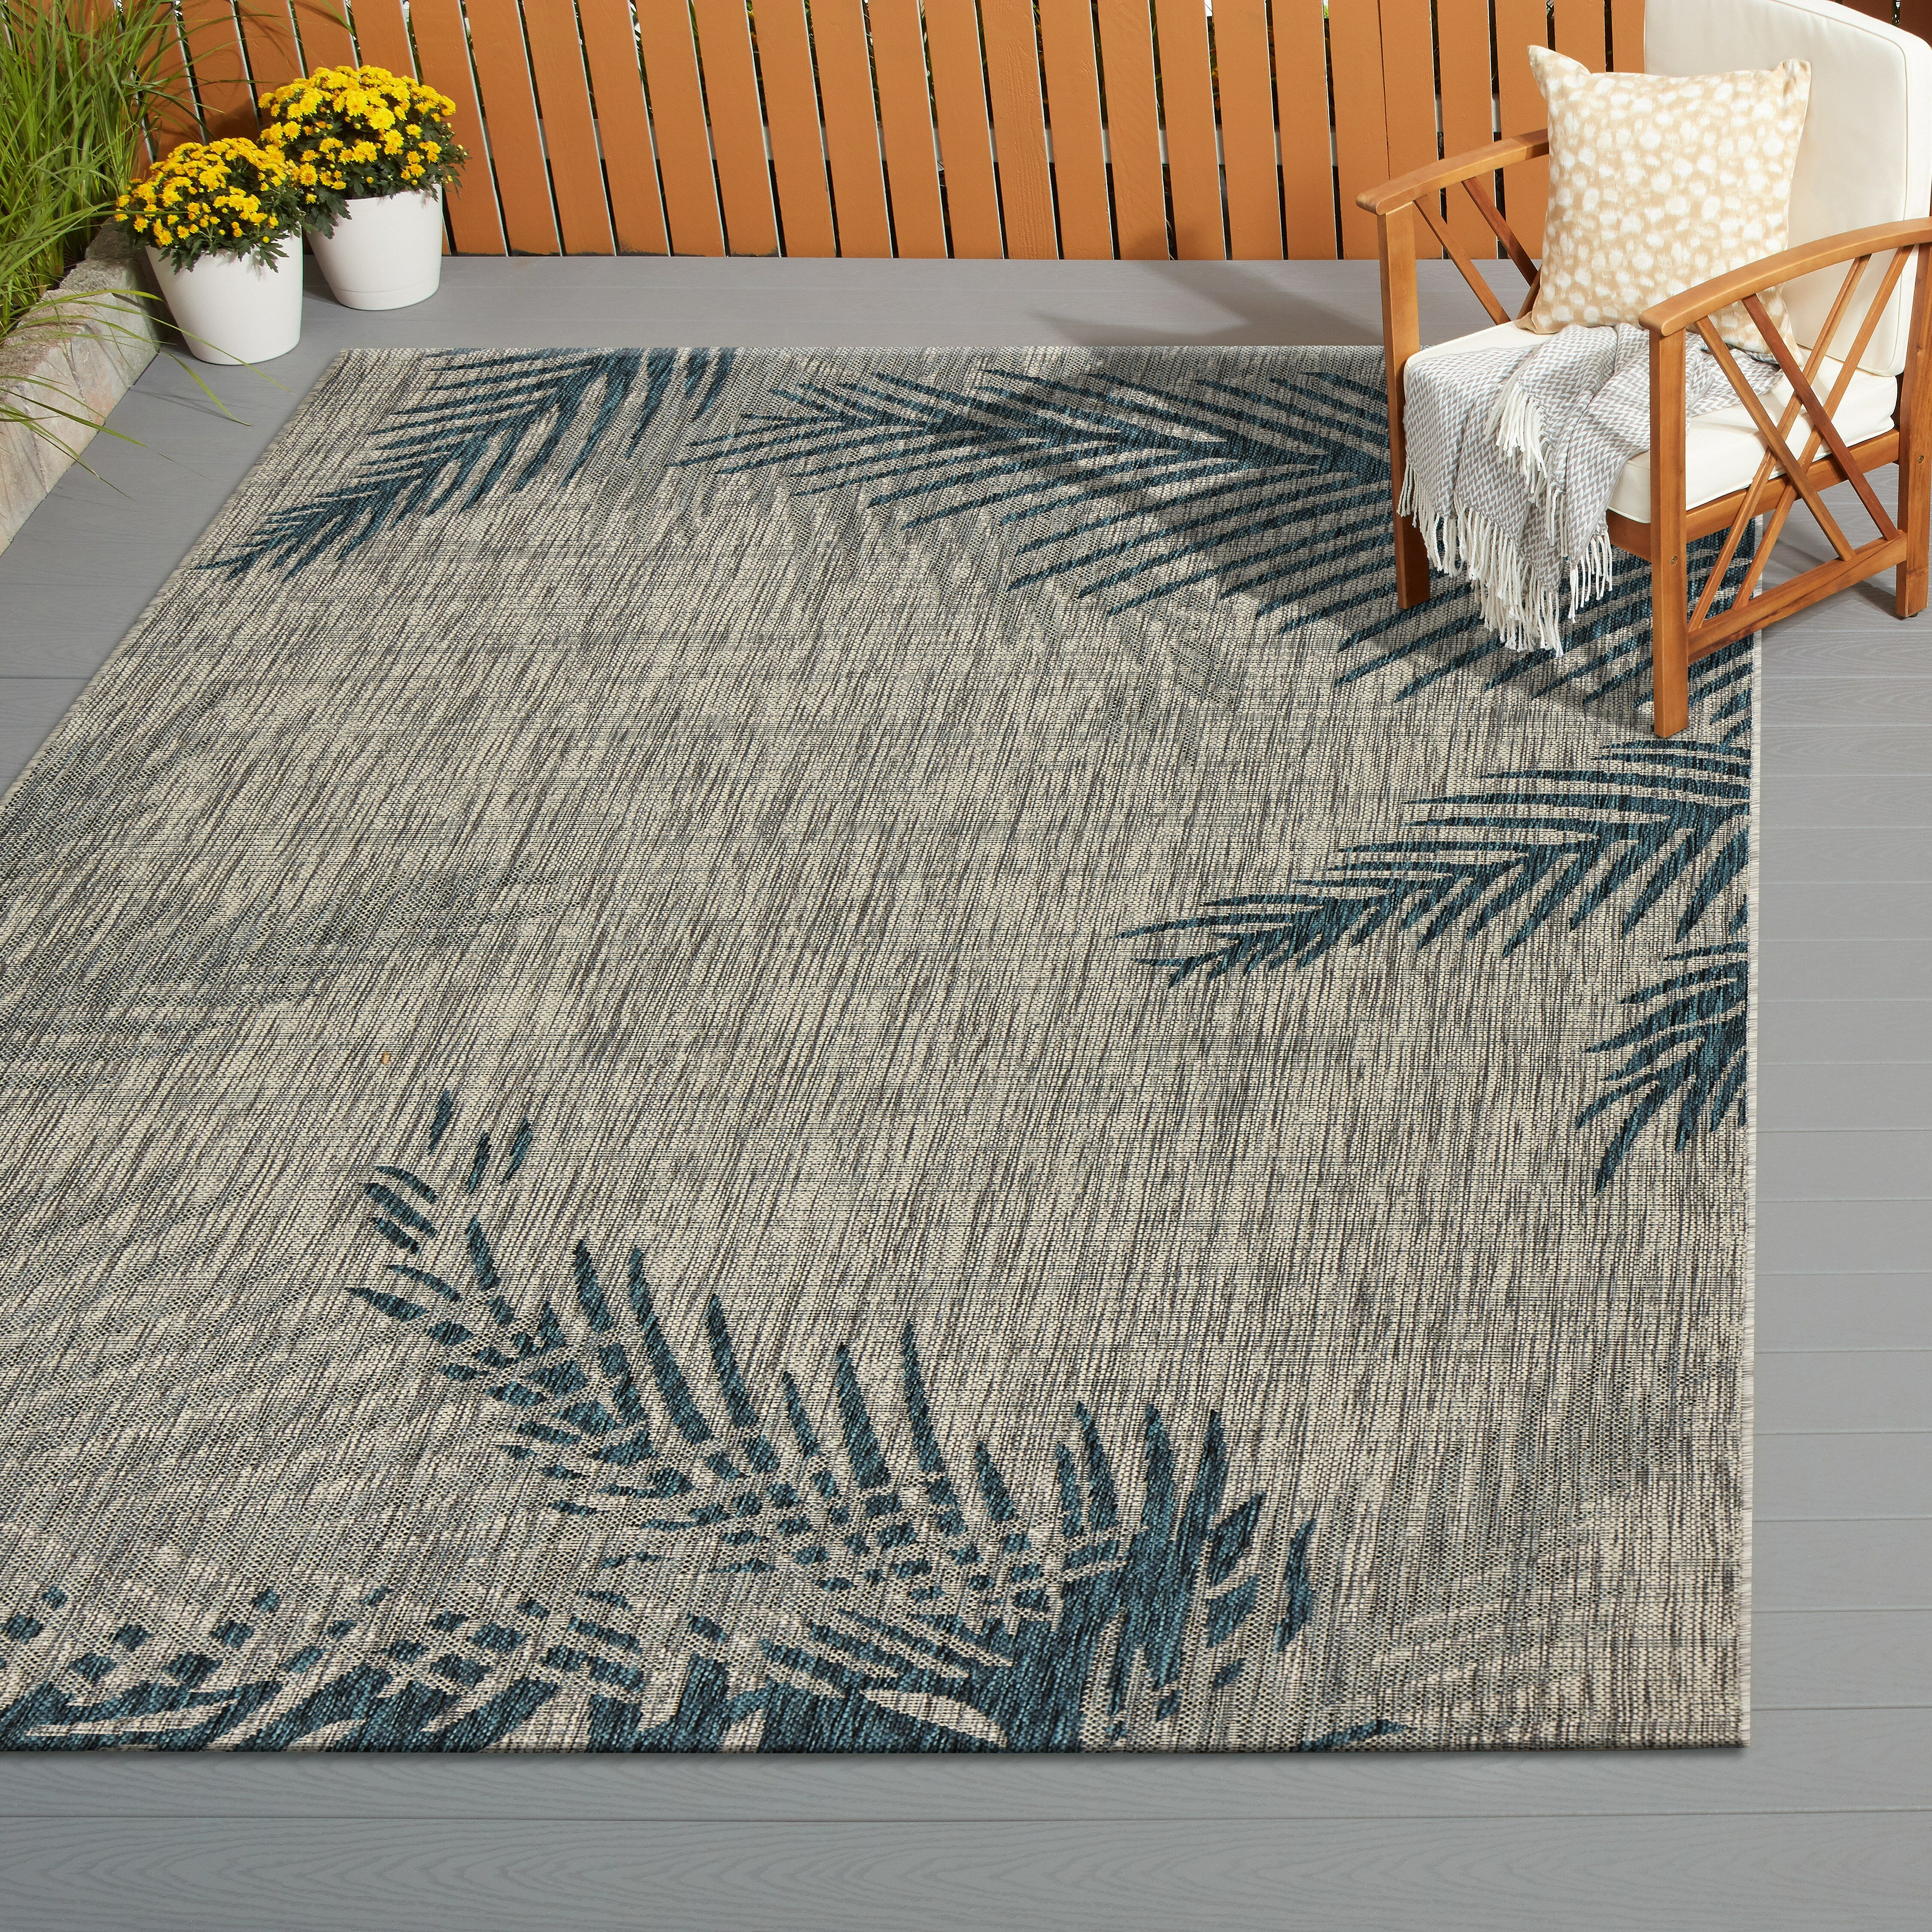 class of tropical touch designs zebra rugs print rug outdoor